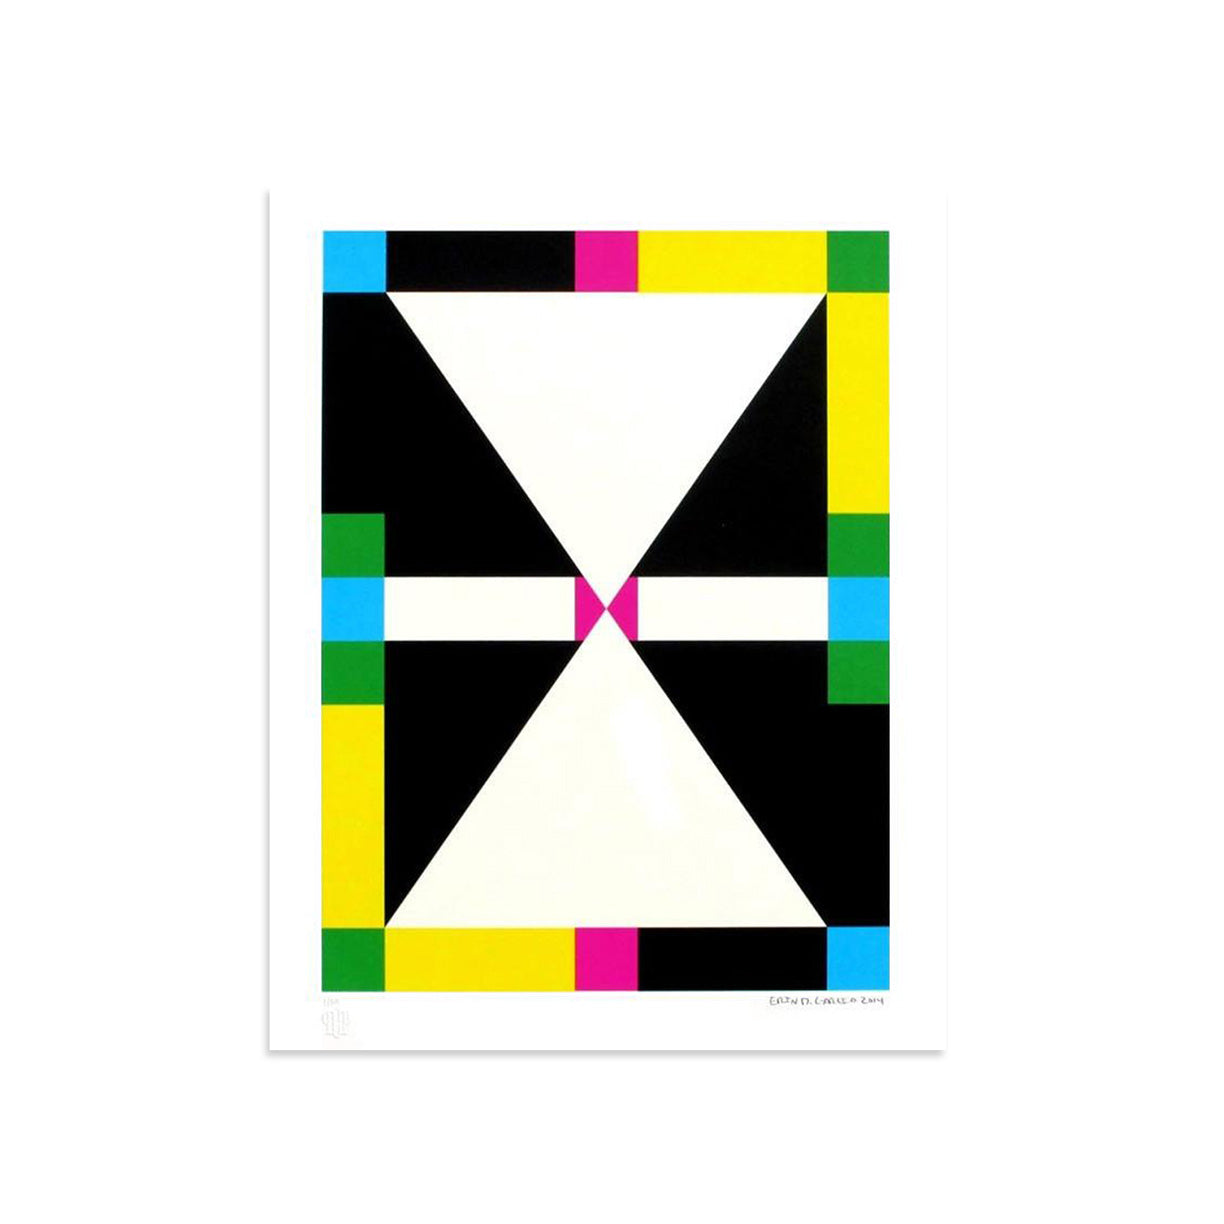 4 Shapes in 6 Colors - Color Rotation 1 by Erin D. Garcia | Print | Poster Child Prints